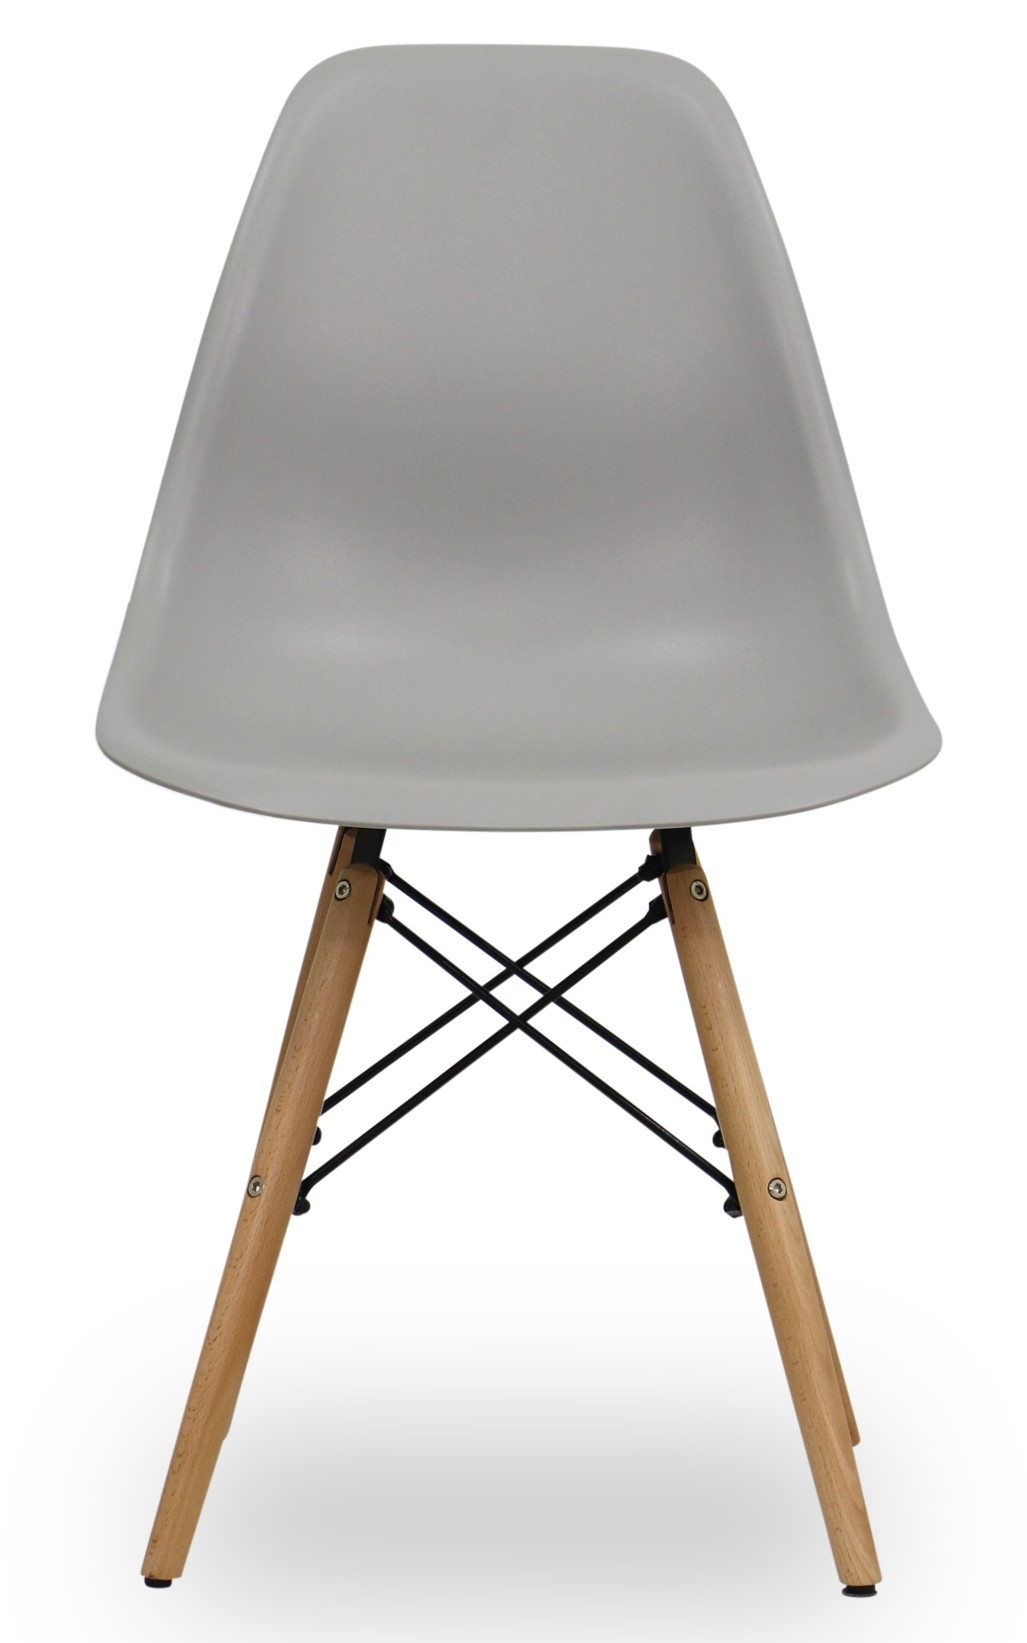 Eames light grey replica designer chair dining room for Replica designer furniture